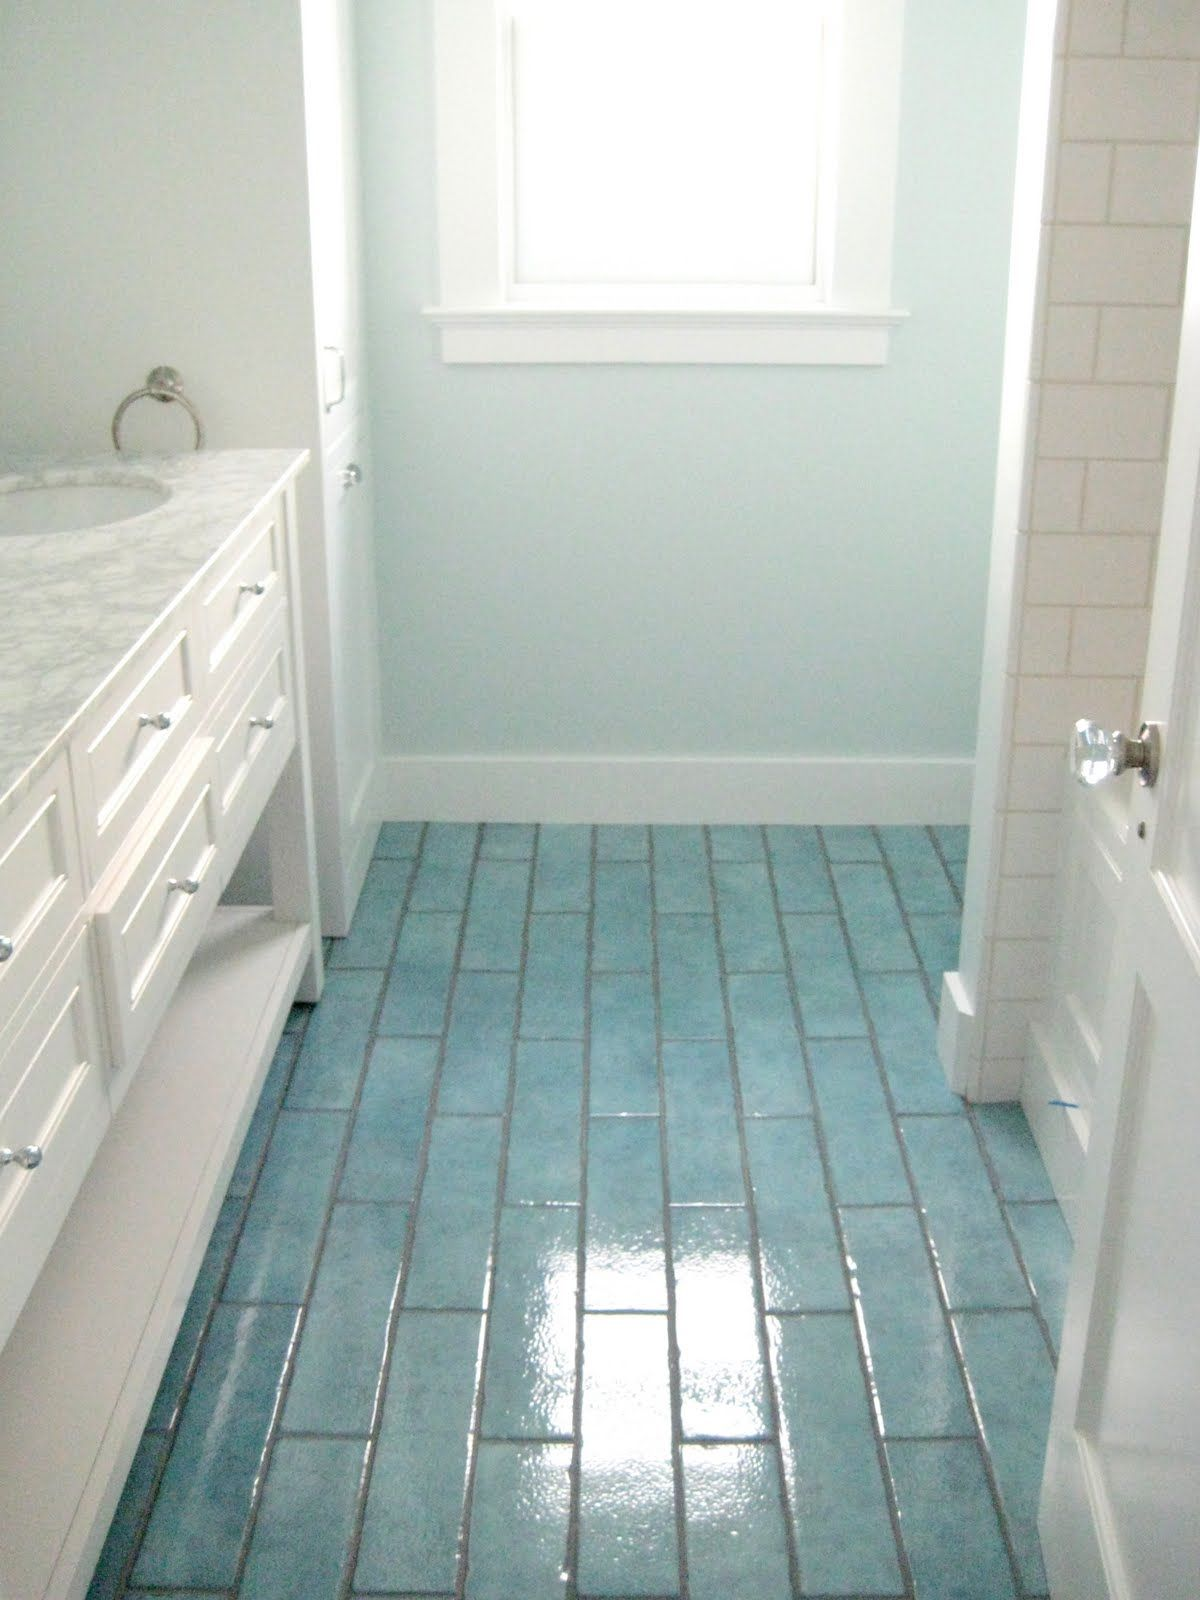 17+ Bathroom Tiles Design Ideas For The Beauty Of The Bathroom Decor ...